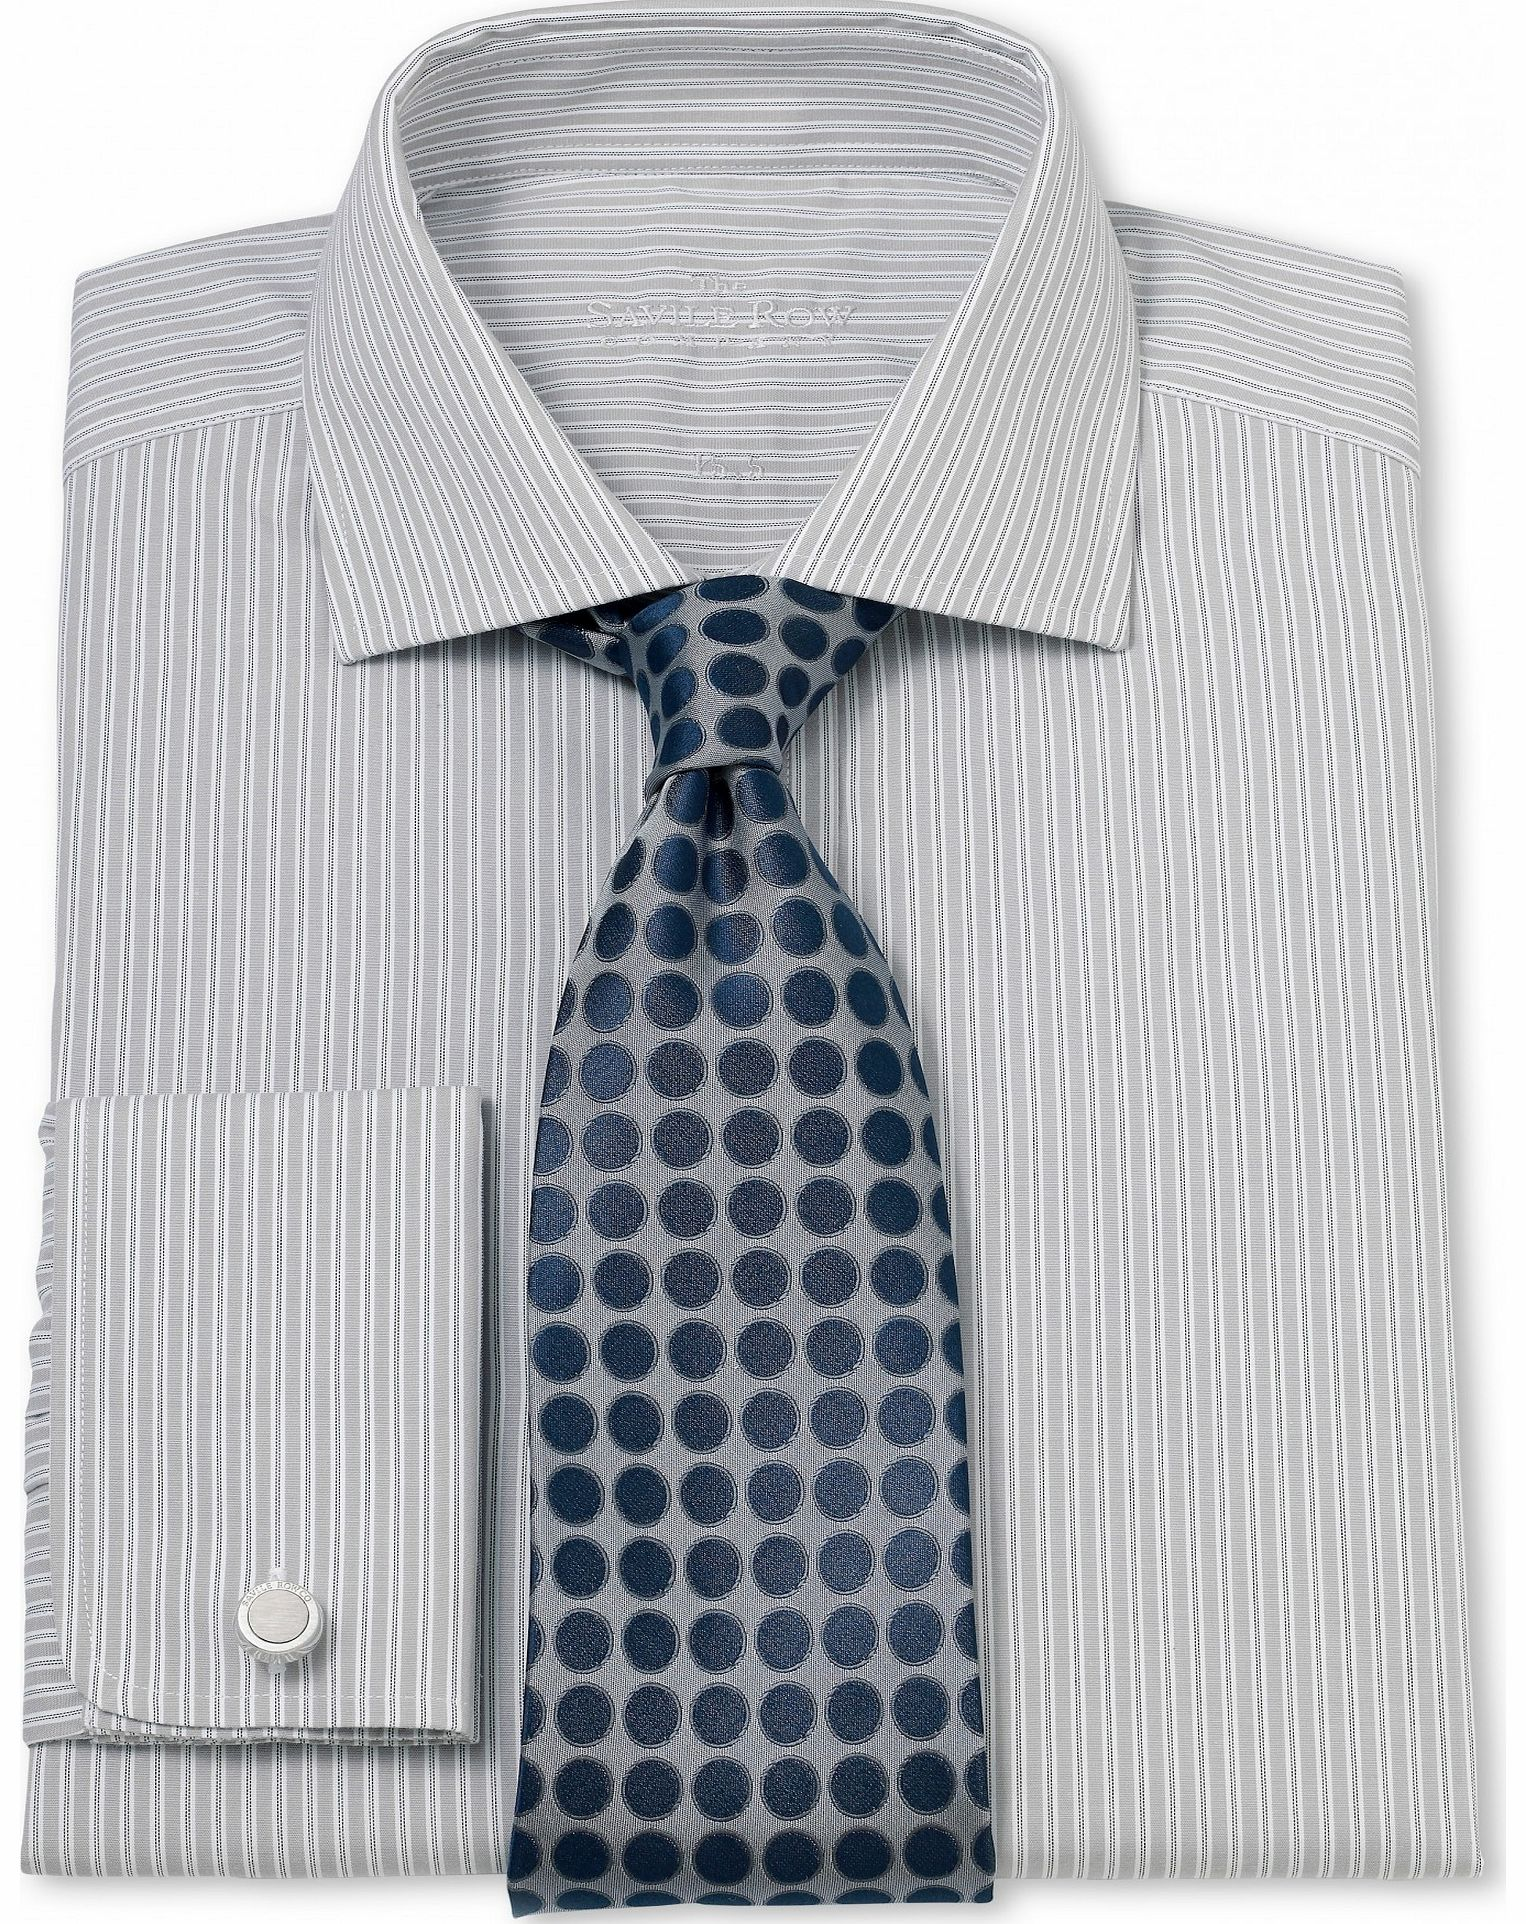 Savile Row Company Grey White Stripe Slim Fit Shirt 17`` Lengthened product image